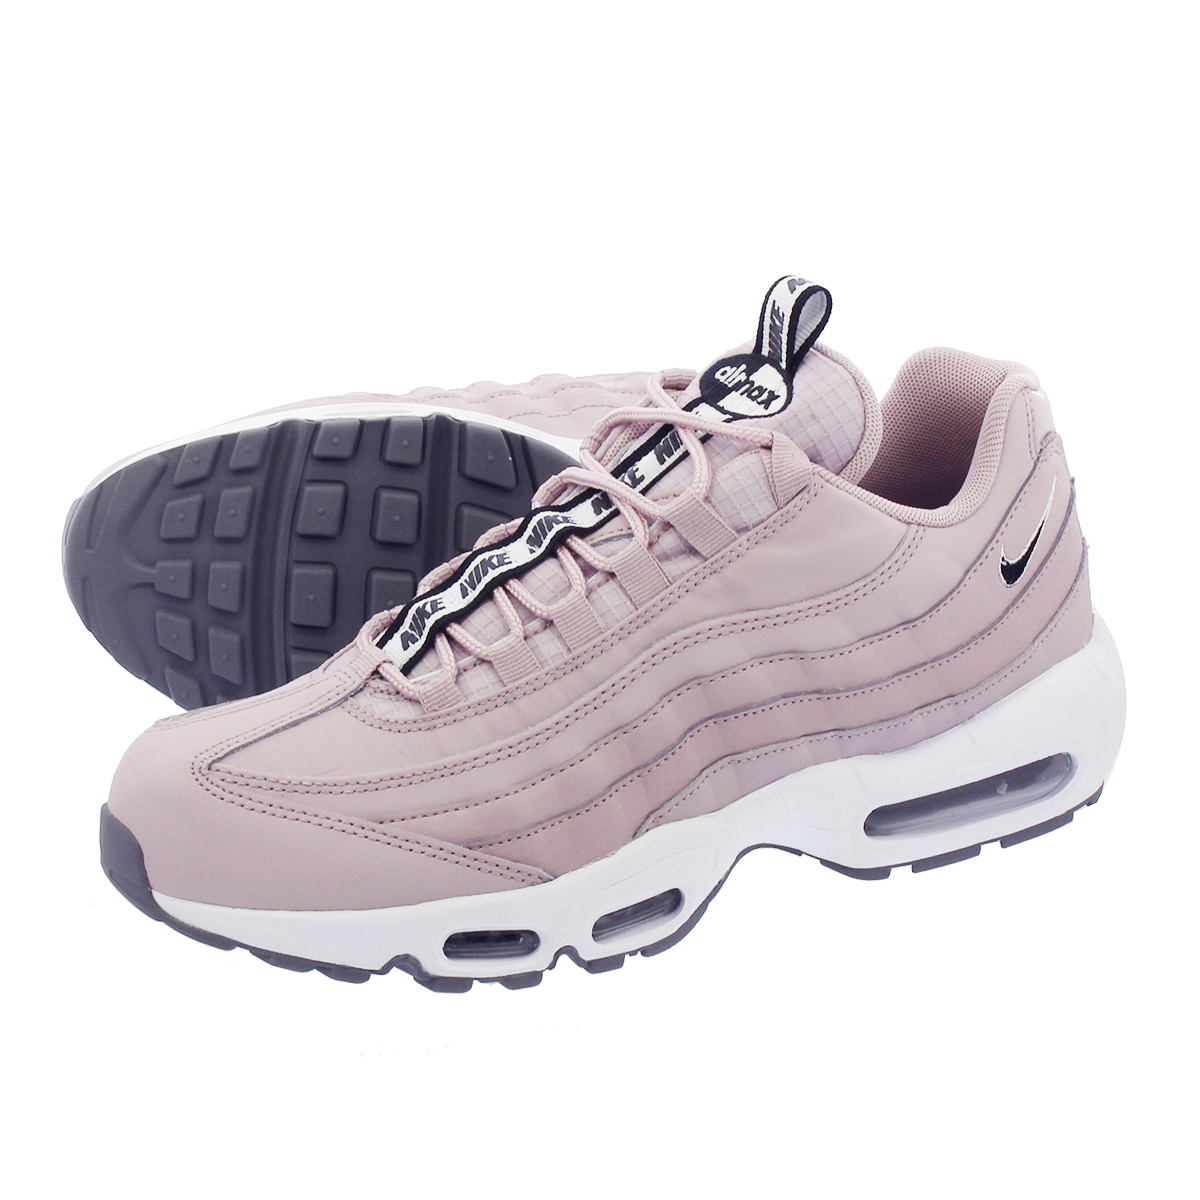 027c8e303e6 LOWTEX PLUS  NIKE AIR MAX 95 SE Kie Ney AMAX 95 SE PARTICLE ROSE WHITE COOL  GREY BLACK